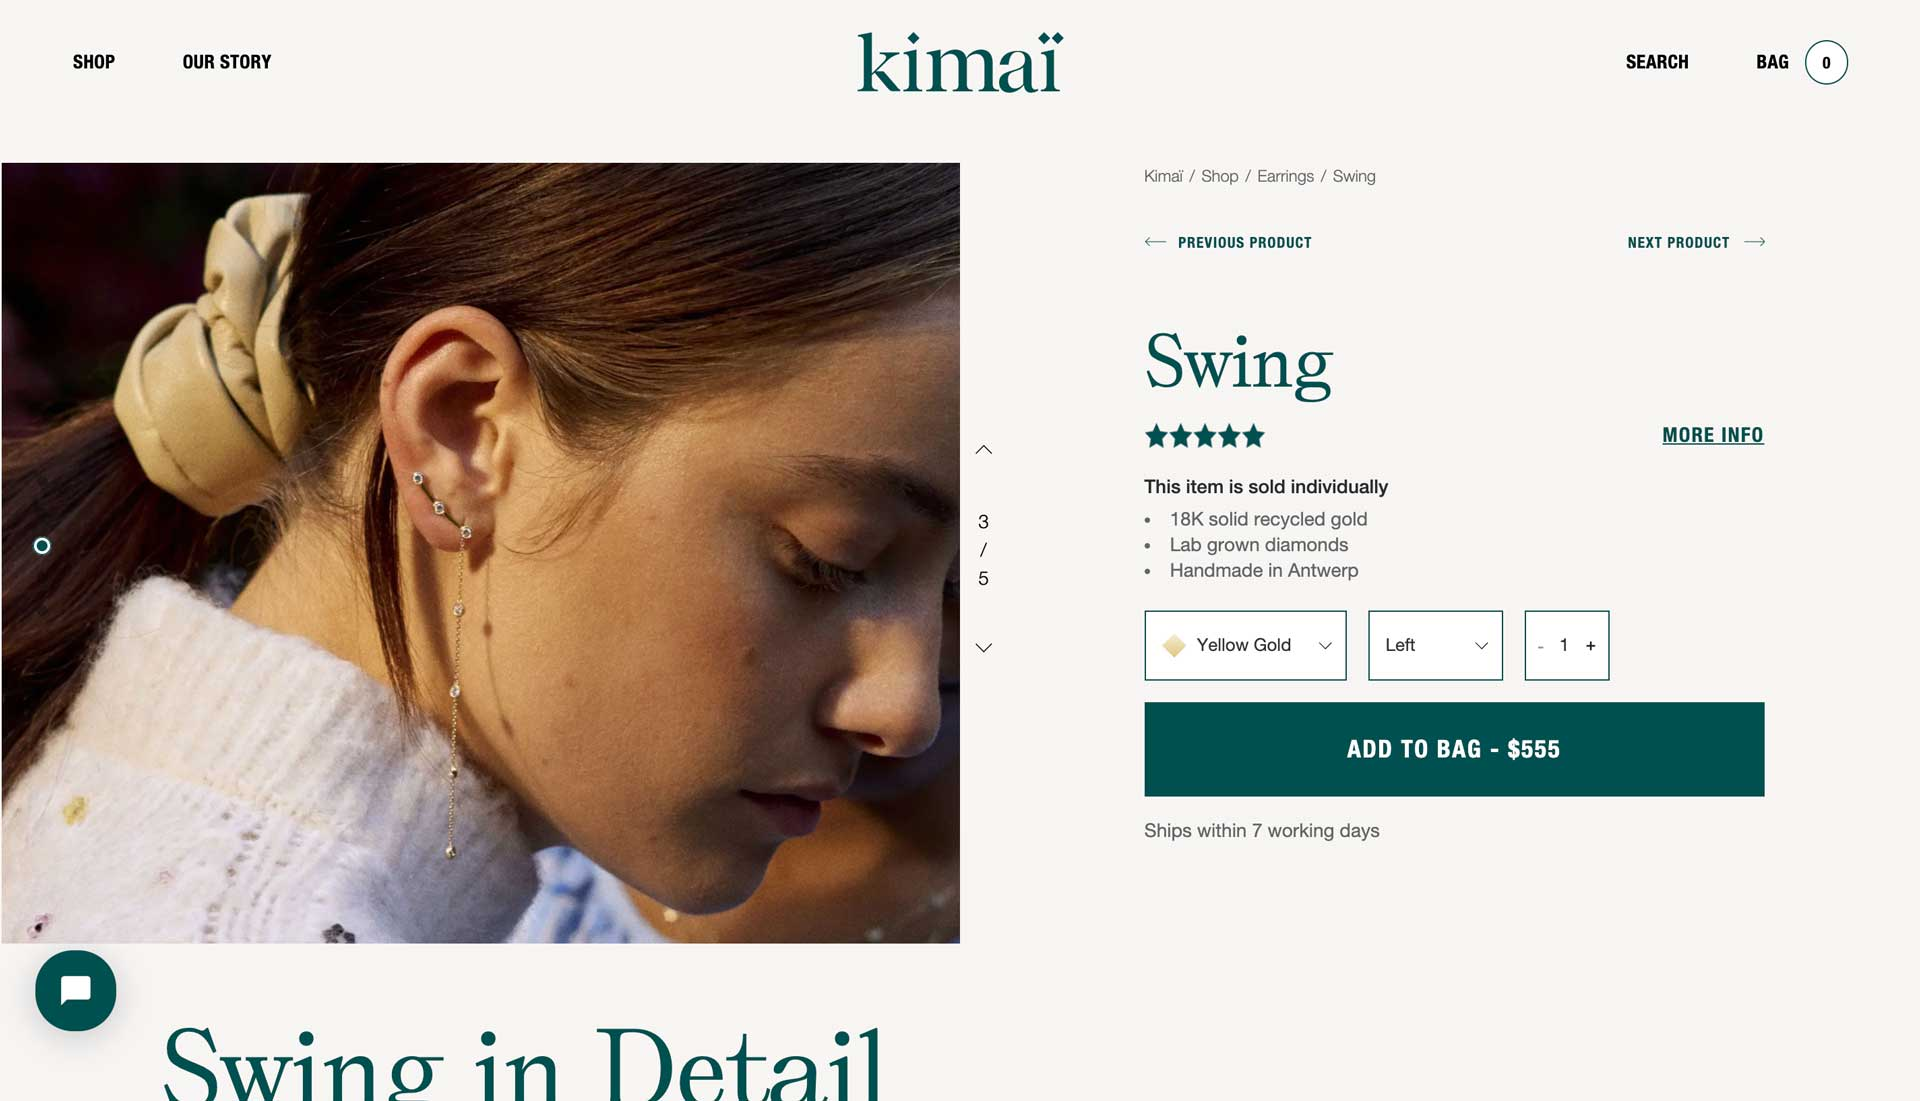 Kimai Product Detail Page